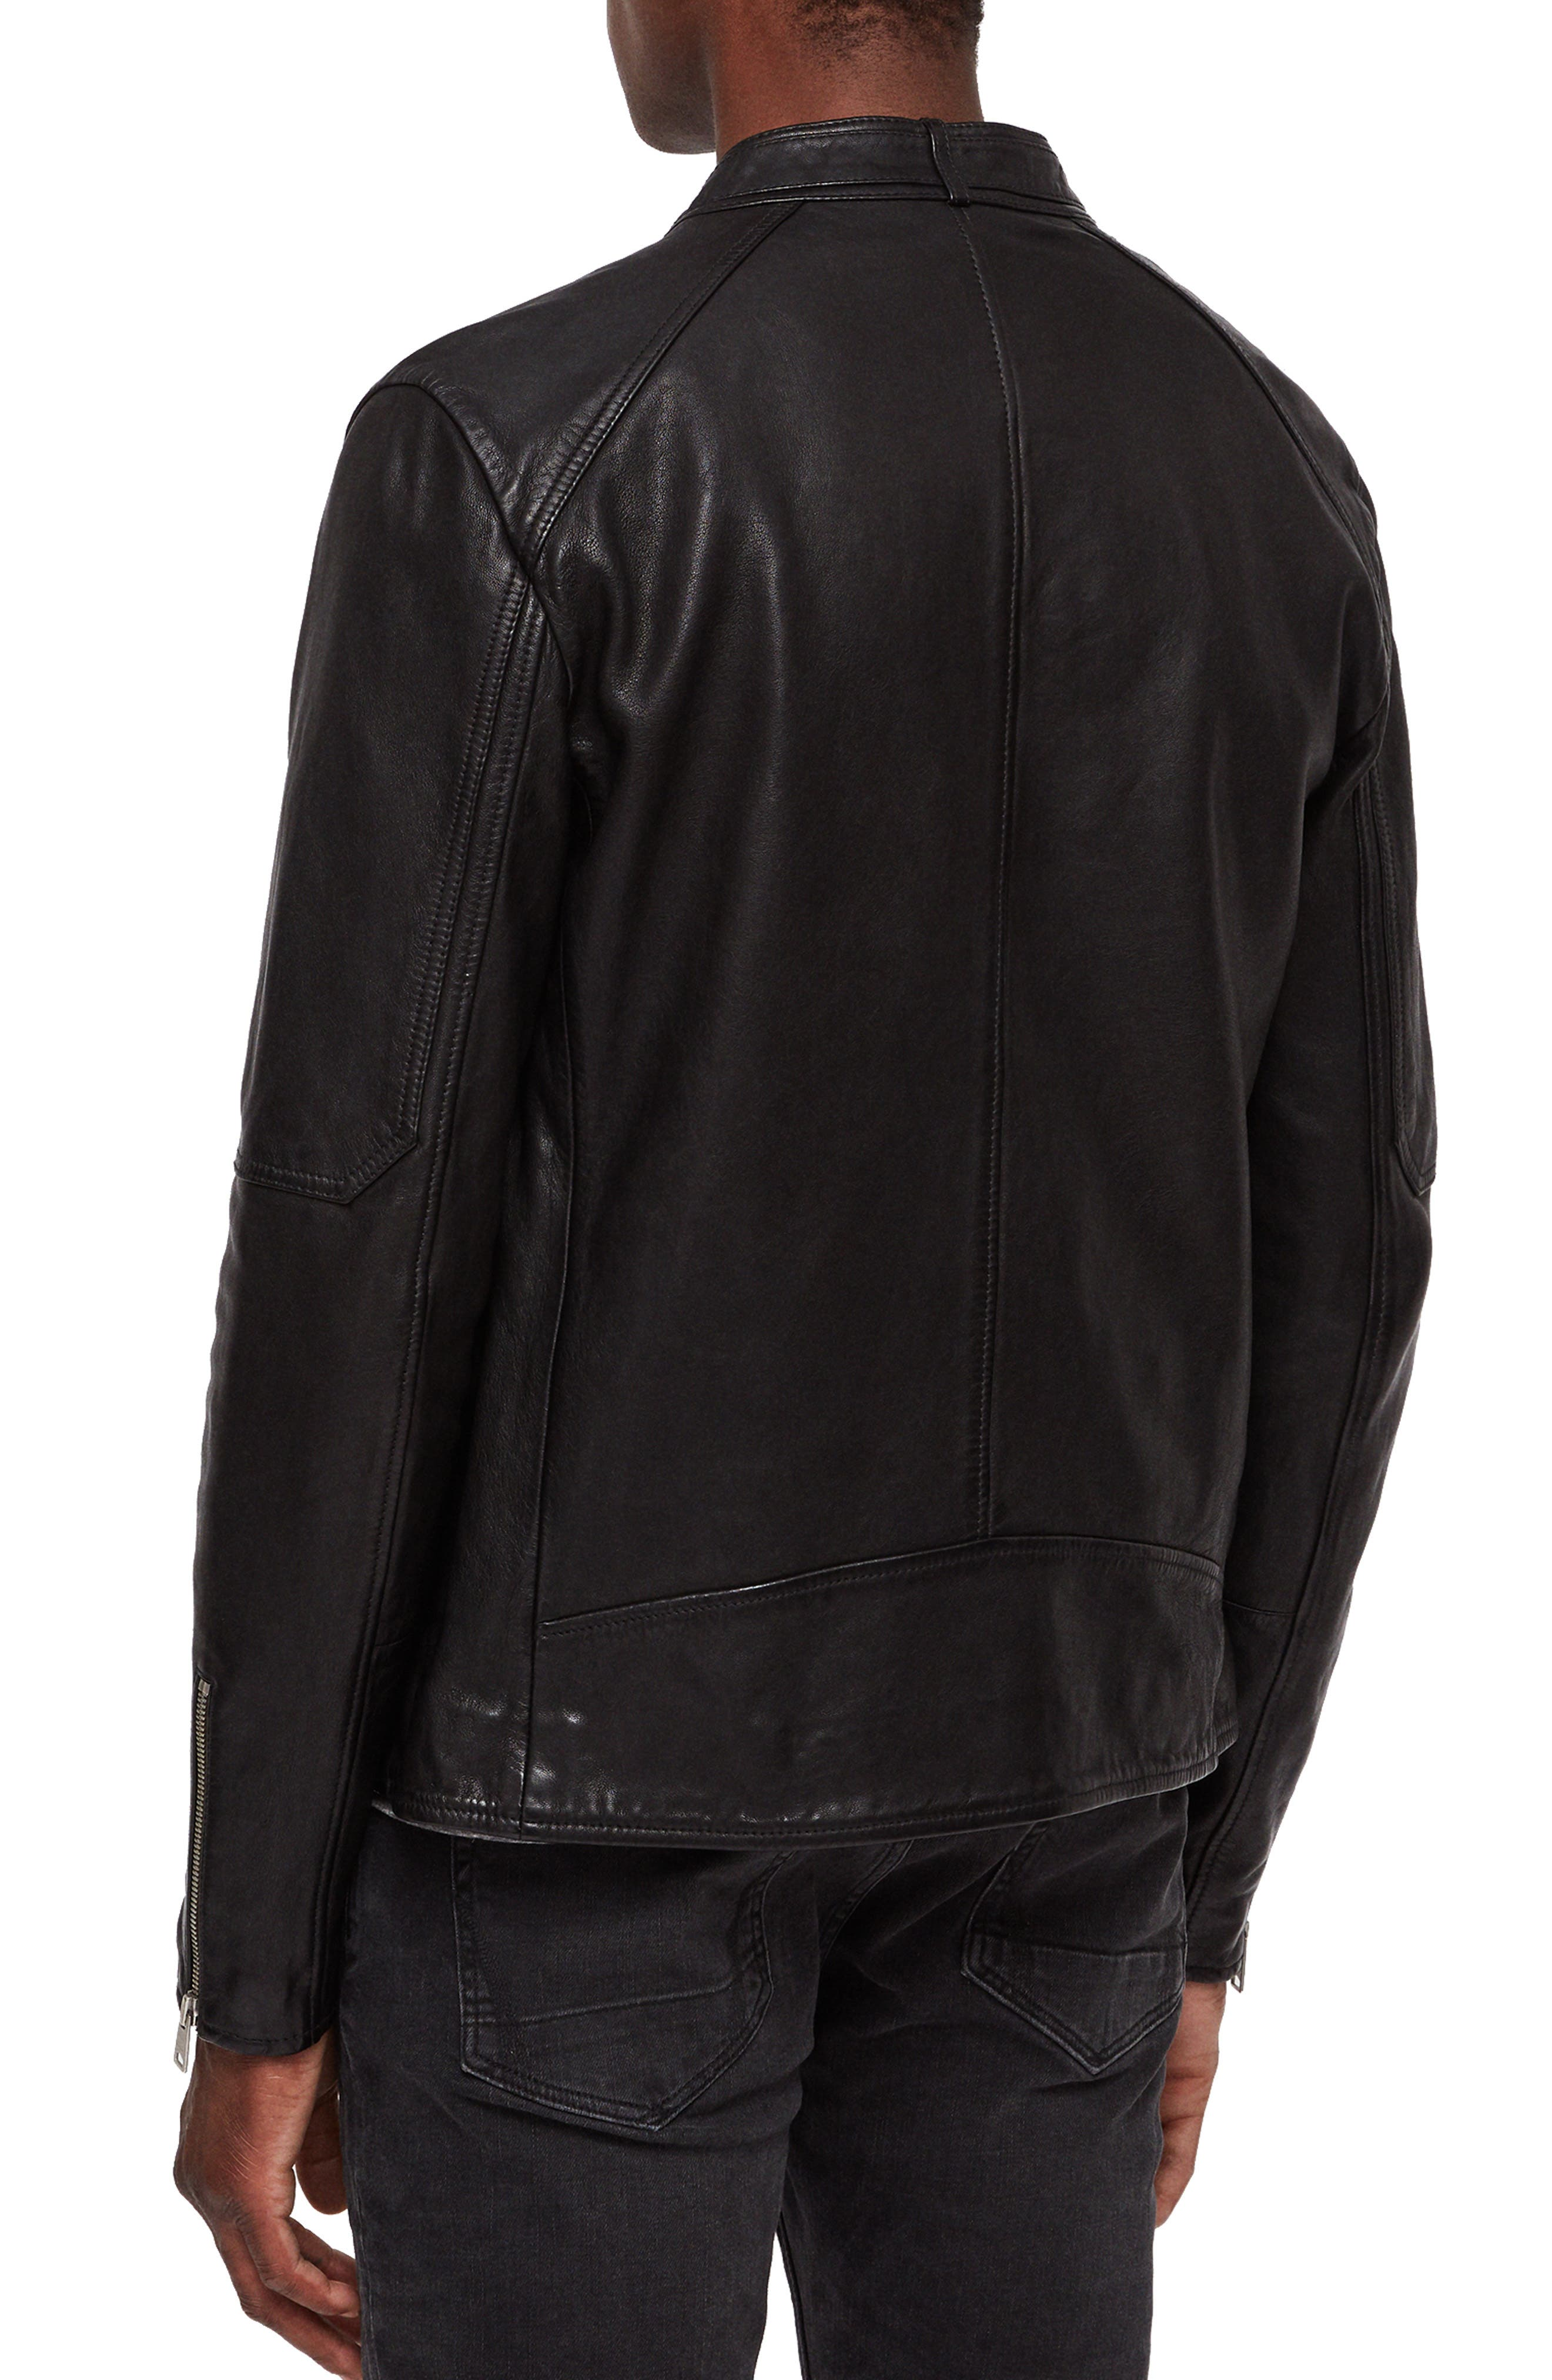 Cora Leather Jacket,                             Alternate thumbnail 2, color,                             003